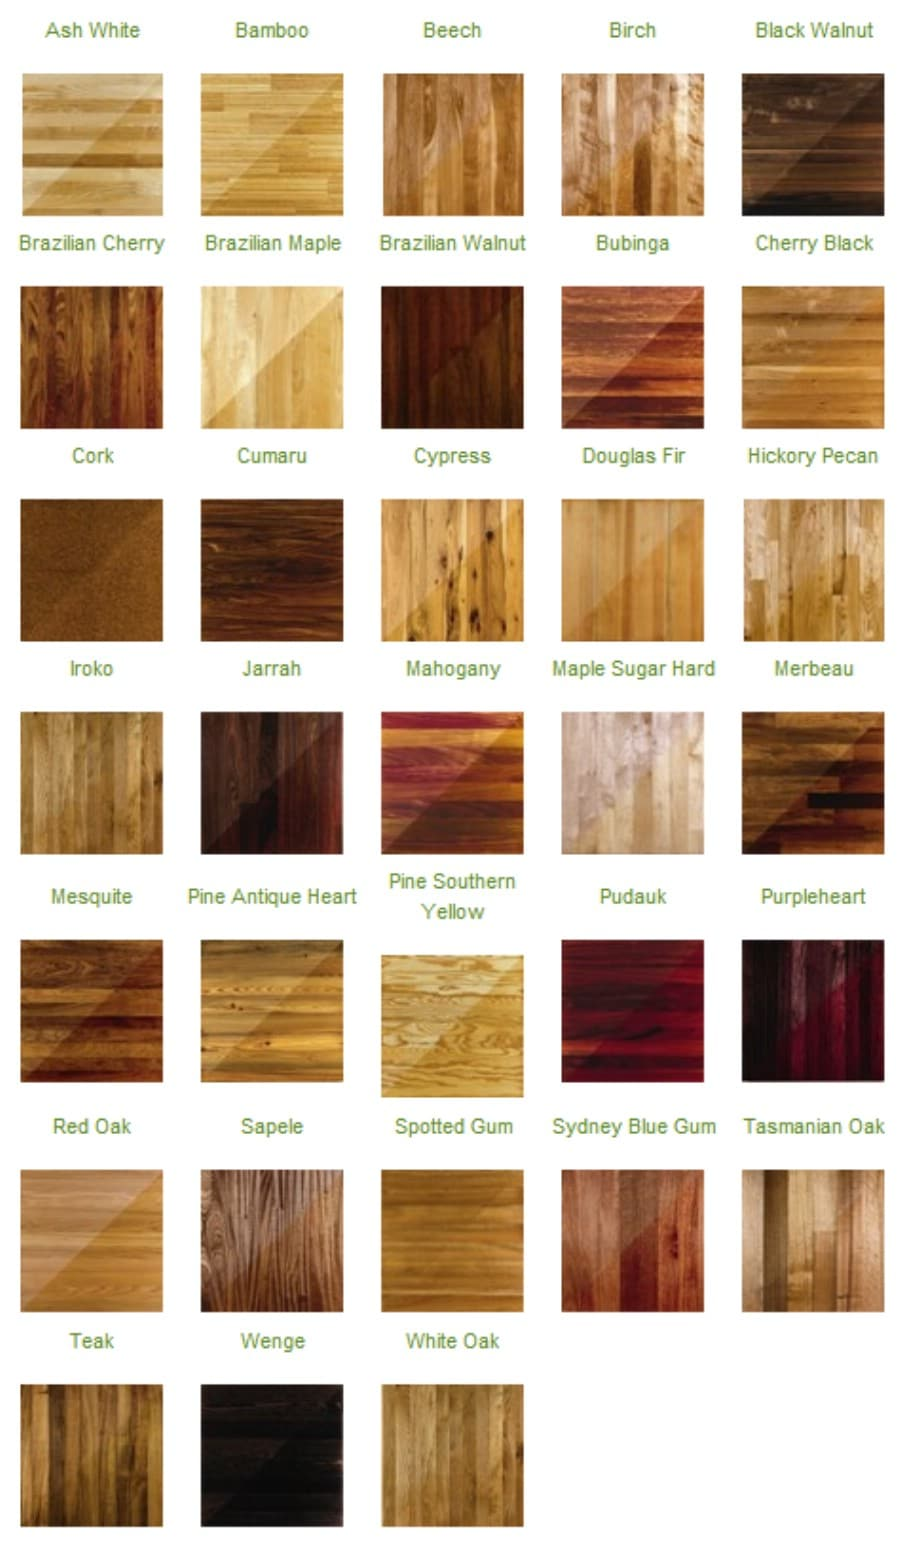 1. Know your hardwood - 50 Amazingly Clever Cheat Sheets To Simplify Home Decorating Projects